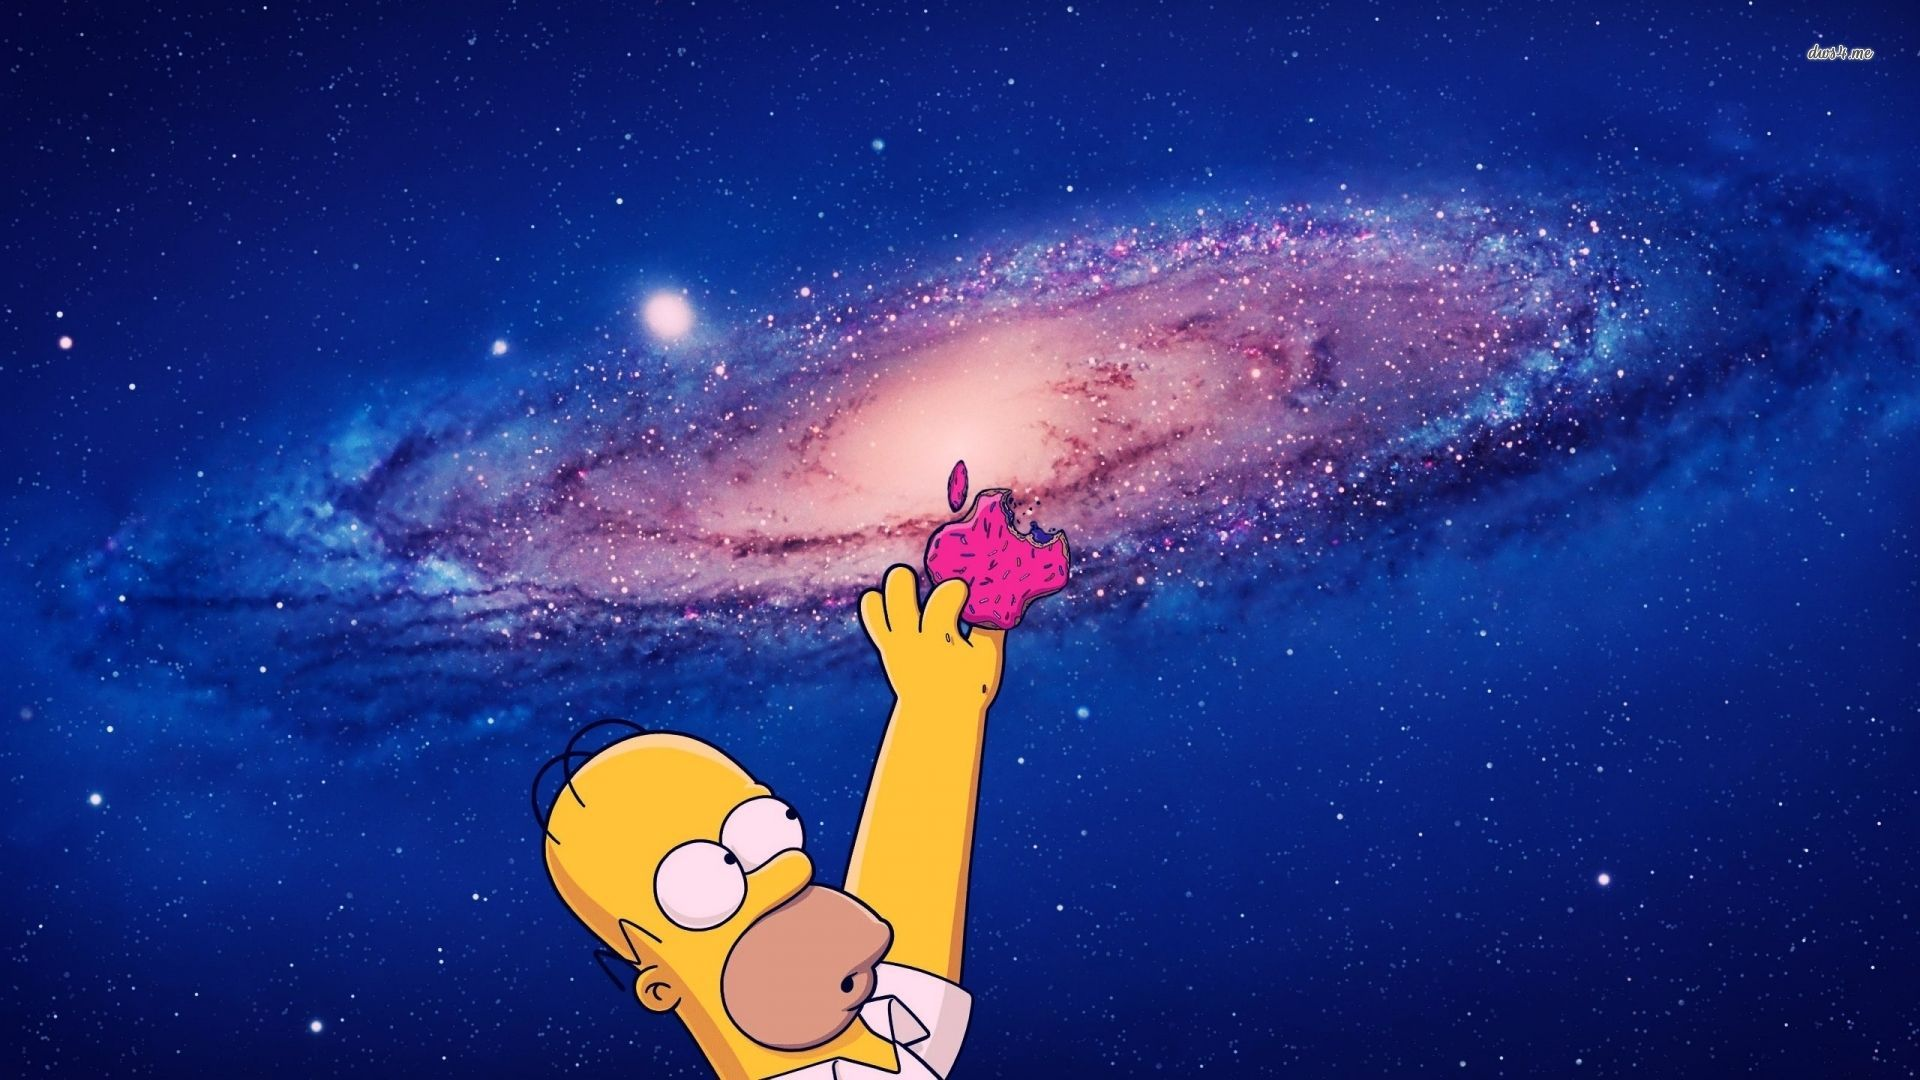 HD The Simpsons wallpapers Wallpaper Zone Cool desktop